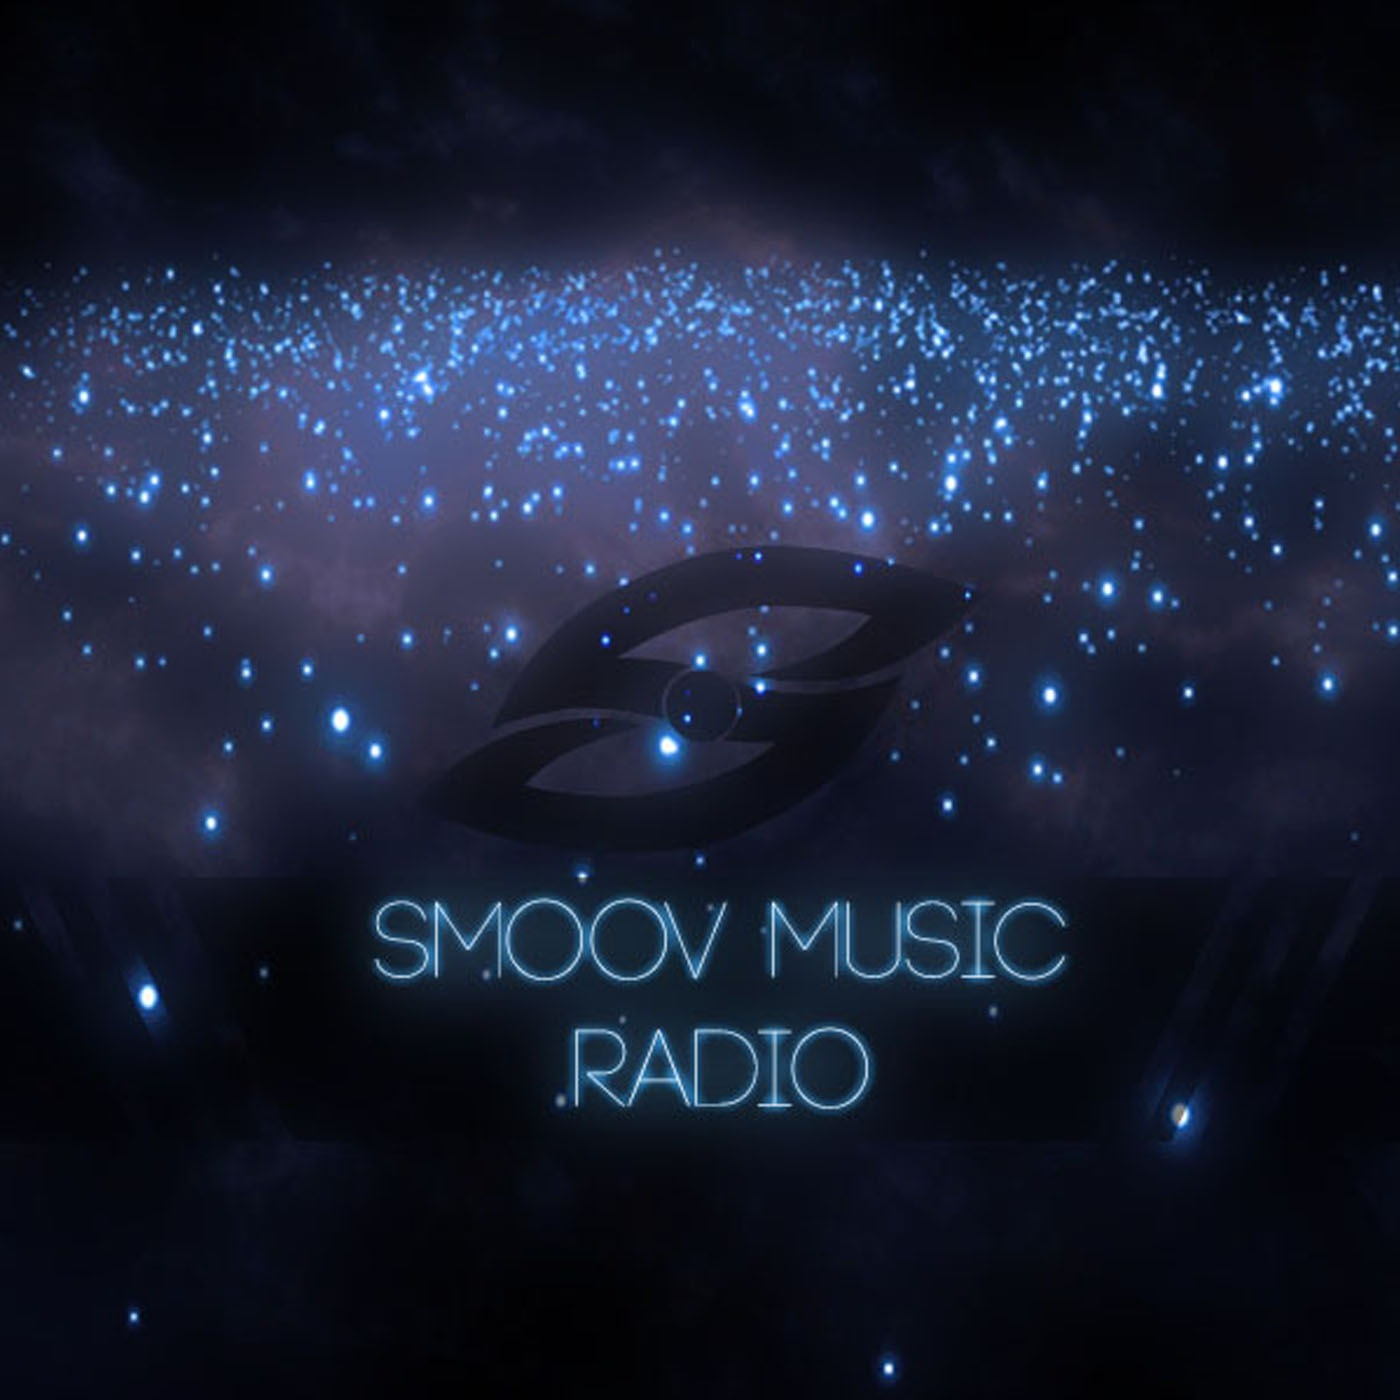 SmoovMusic Radio